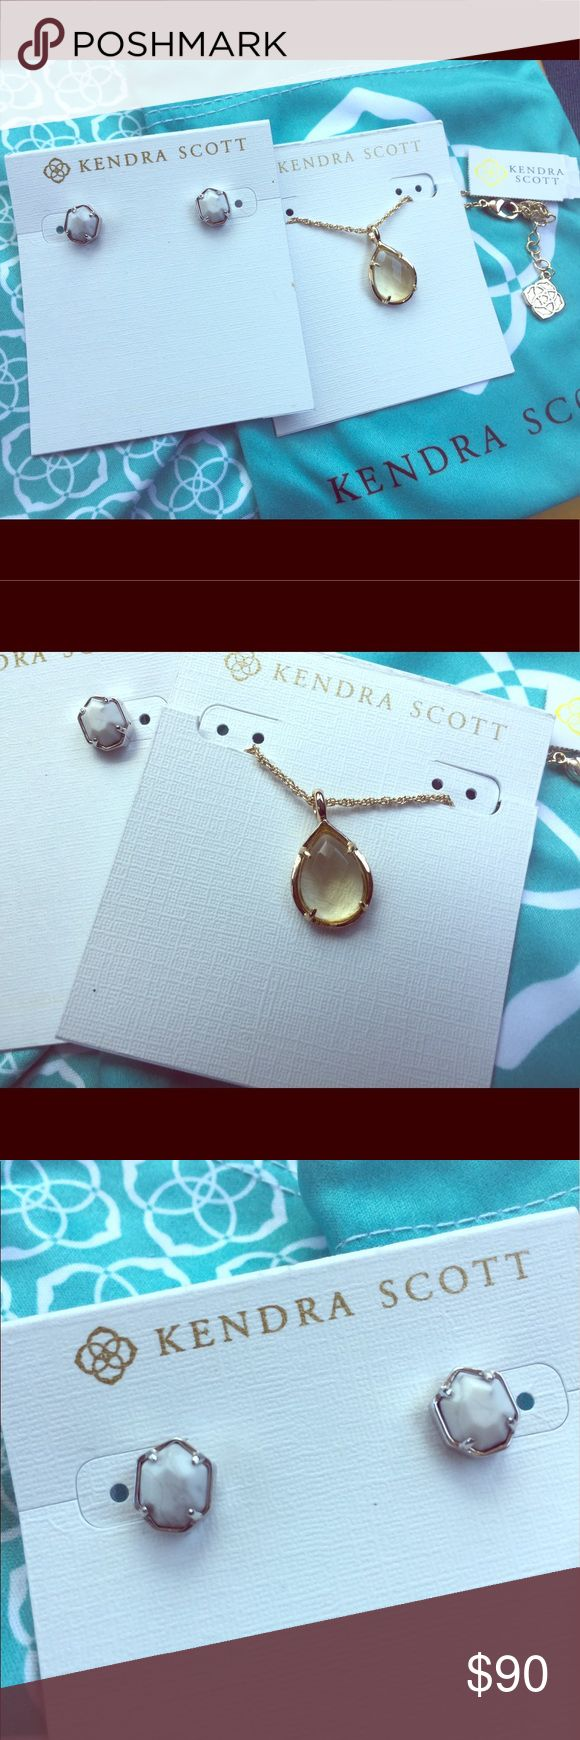 """✨Kendra Scott """"Logan"""" earrings & """"Kiri"""" necklace! Kendra Scott Bundle - """"Logan"""" earrings silver  & """"Kiri"""" Necklace Gold/Yellow. Feminine and beautiful. Take both brand new pieces. They come in their dust bag and with their care card. Kendra Scott Jewelry Earrings"""